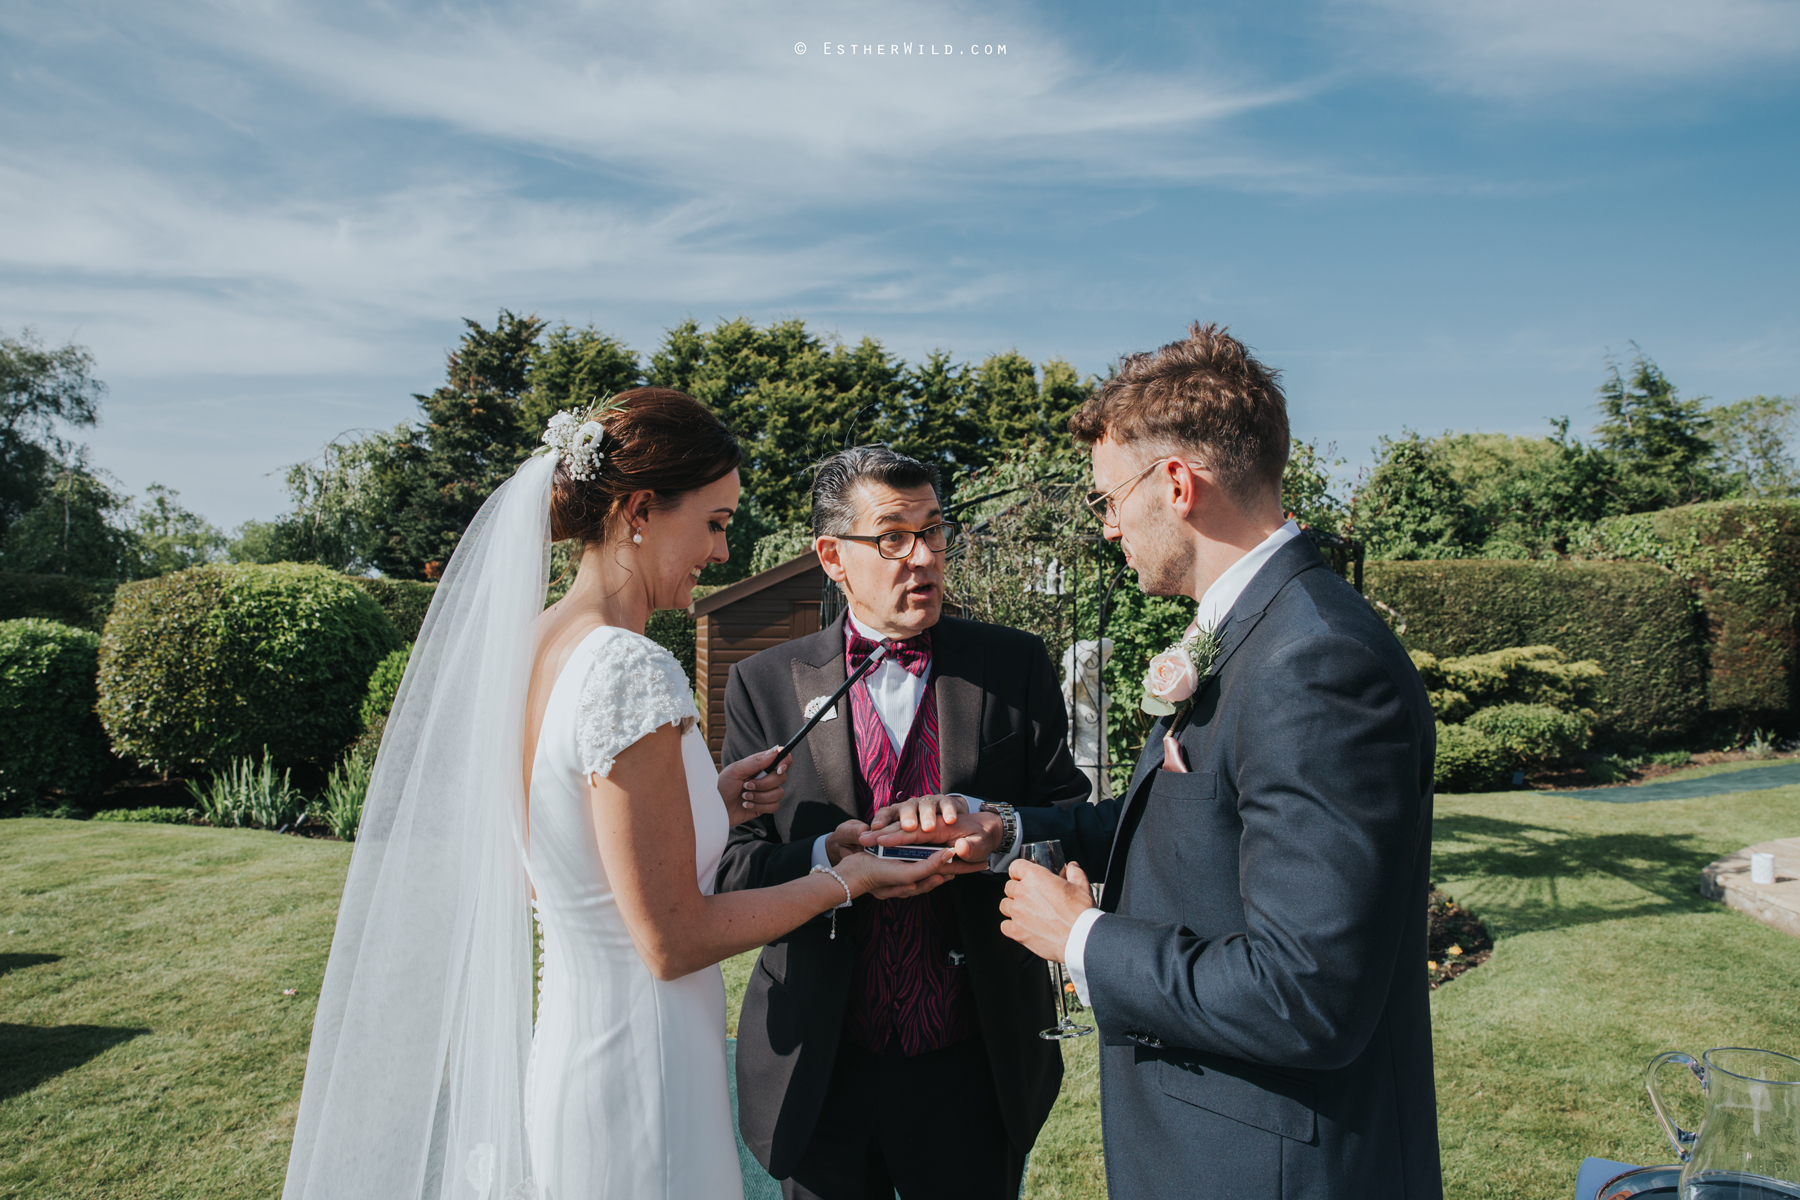 Wootton_Wedding_Copyright_Esther_Wild_Photographer_IMG_2034.jpg